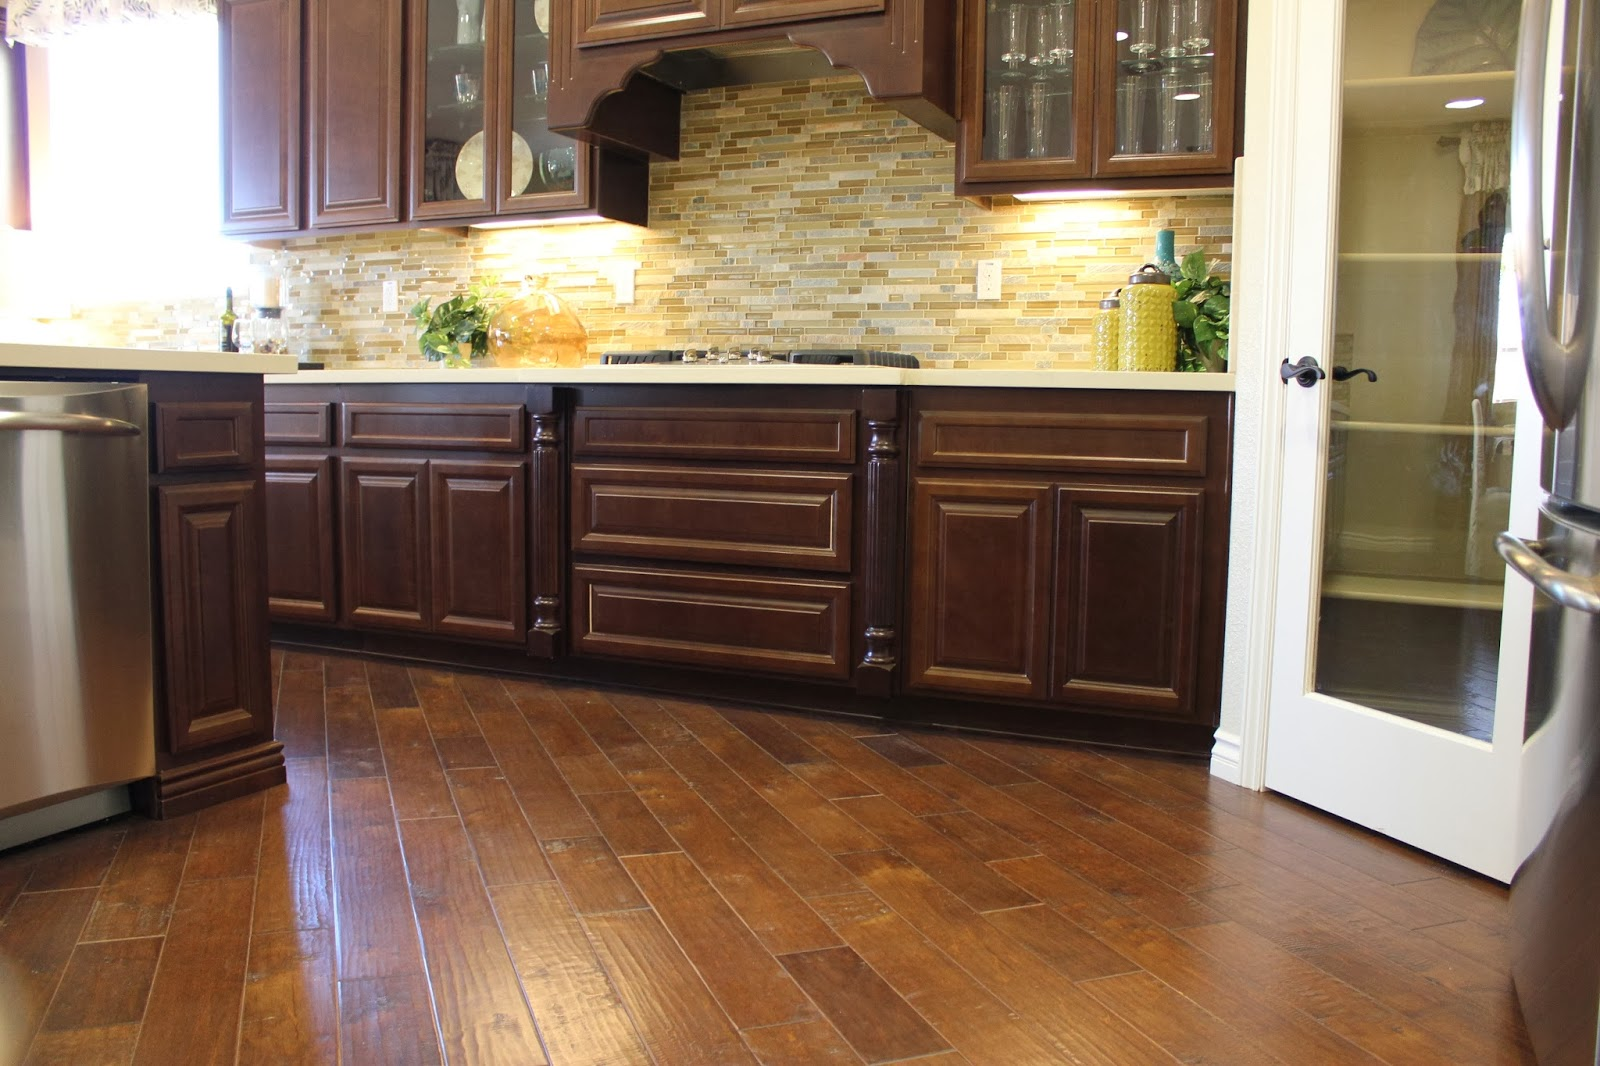 Hardwood Floors In The Kitchen Simas Floor And Design Company Hardwood Floors 101